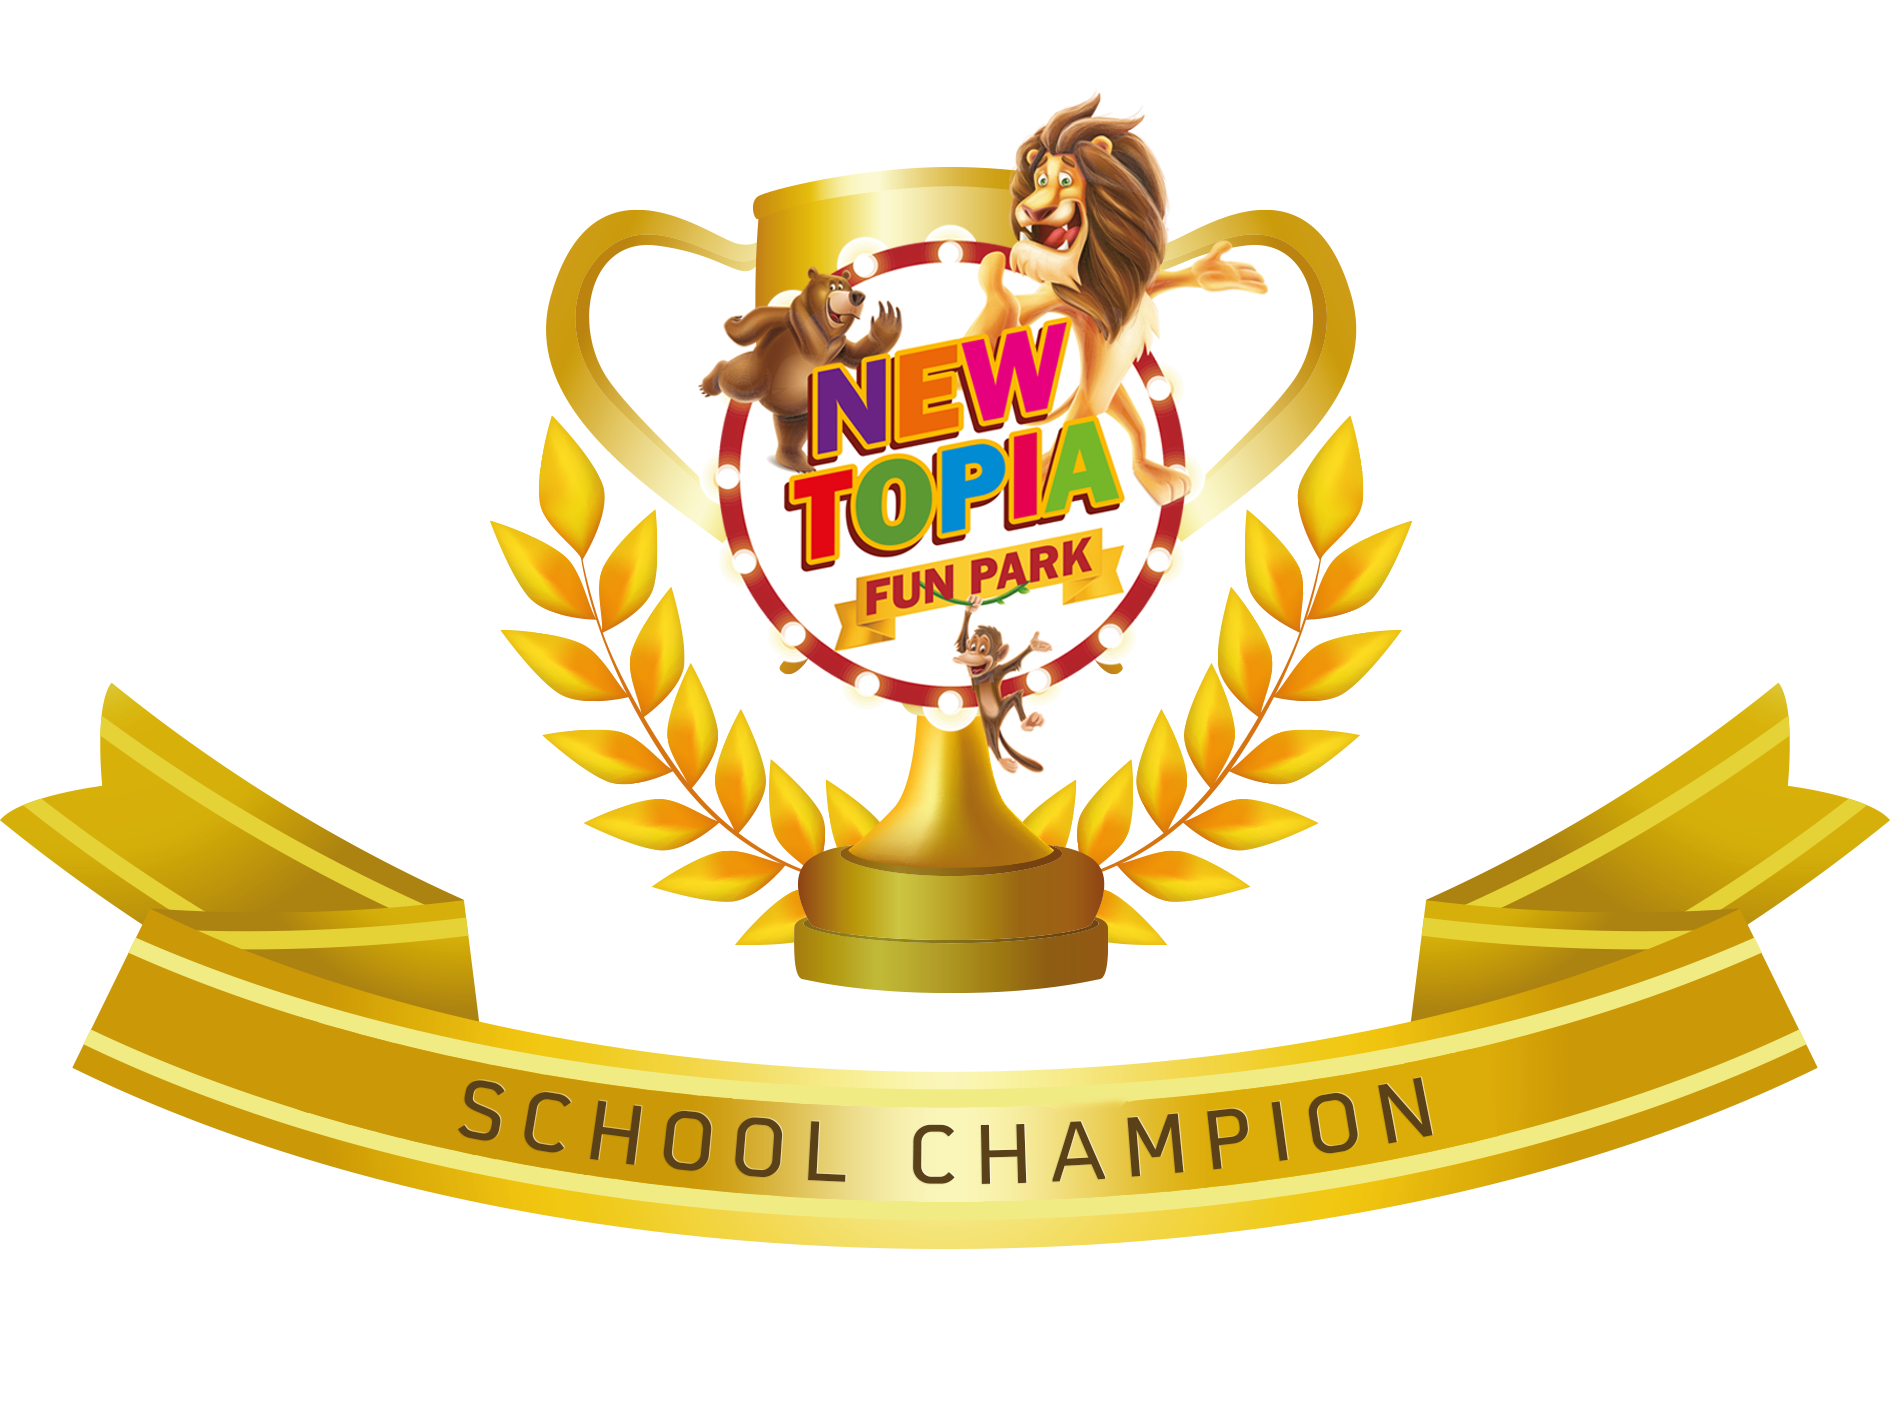 School Champion Logo